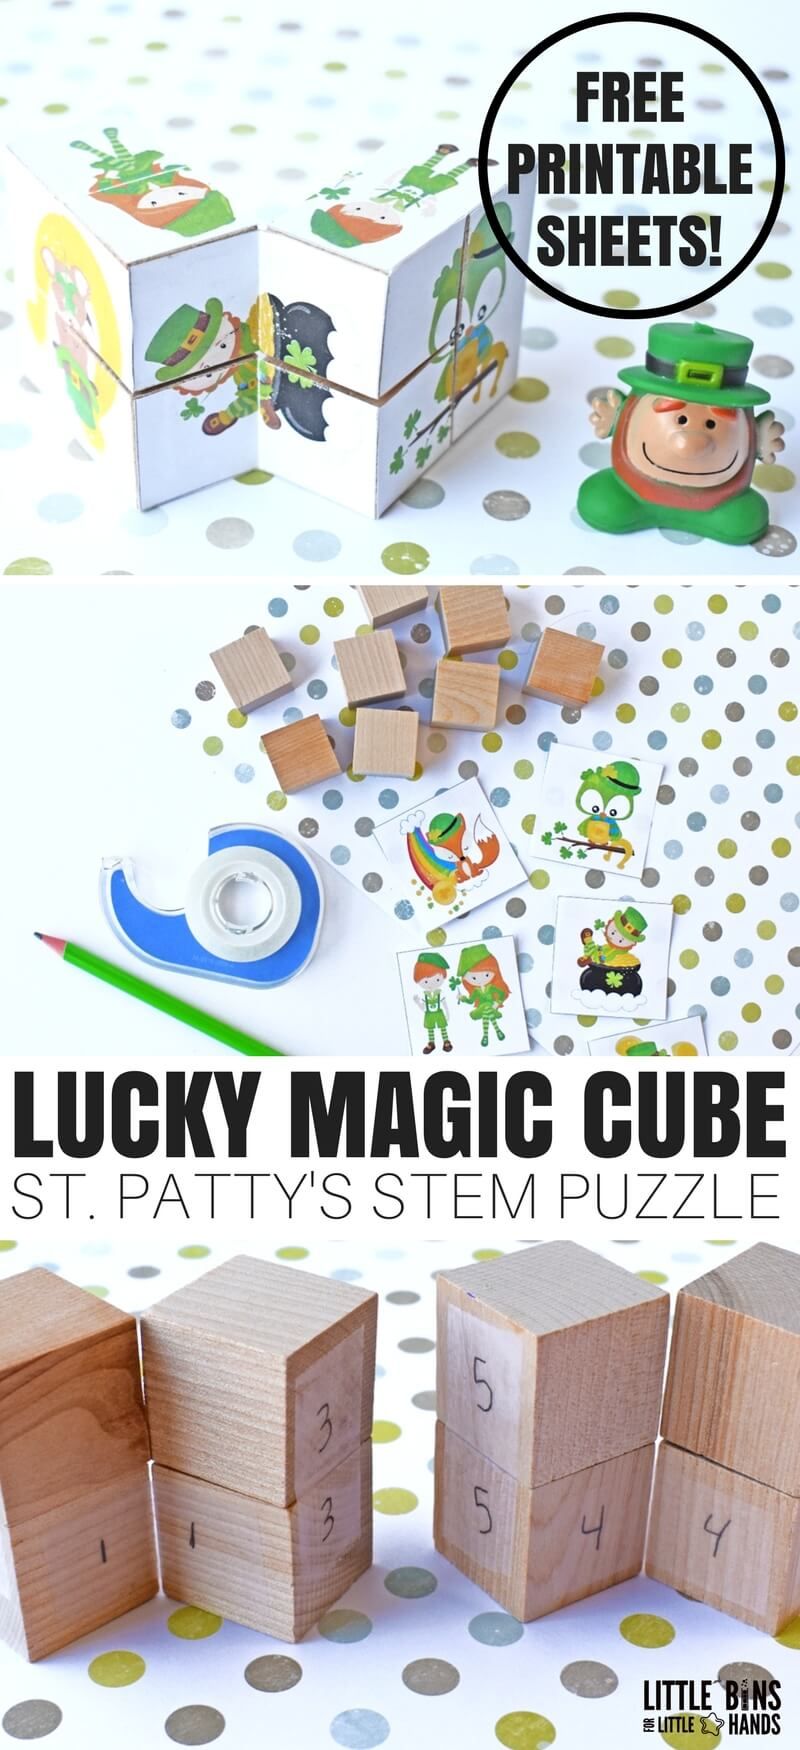 I am super excited to share this neat St Patricks Day Magic Cube Puzzle with you this week. It's perfect to add to our St Patricks Day STEM countdown happening the first 17 days of March! You will find the free printable and step by step instructions below to make your very own lucky magic cube with your own little leprechauns. Keep STEM fun!